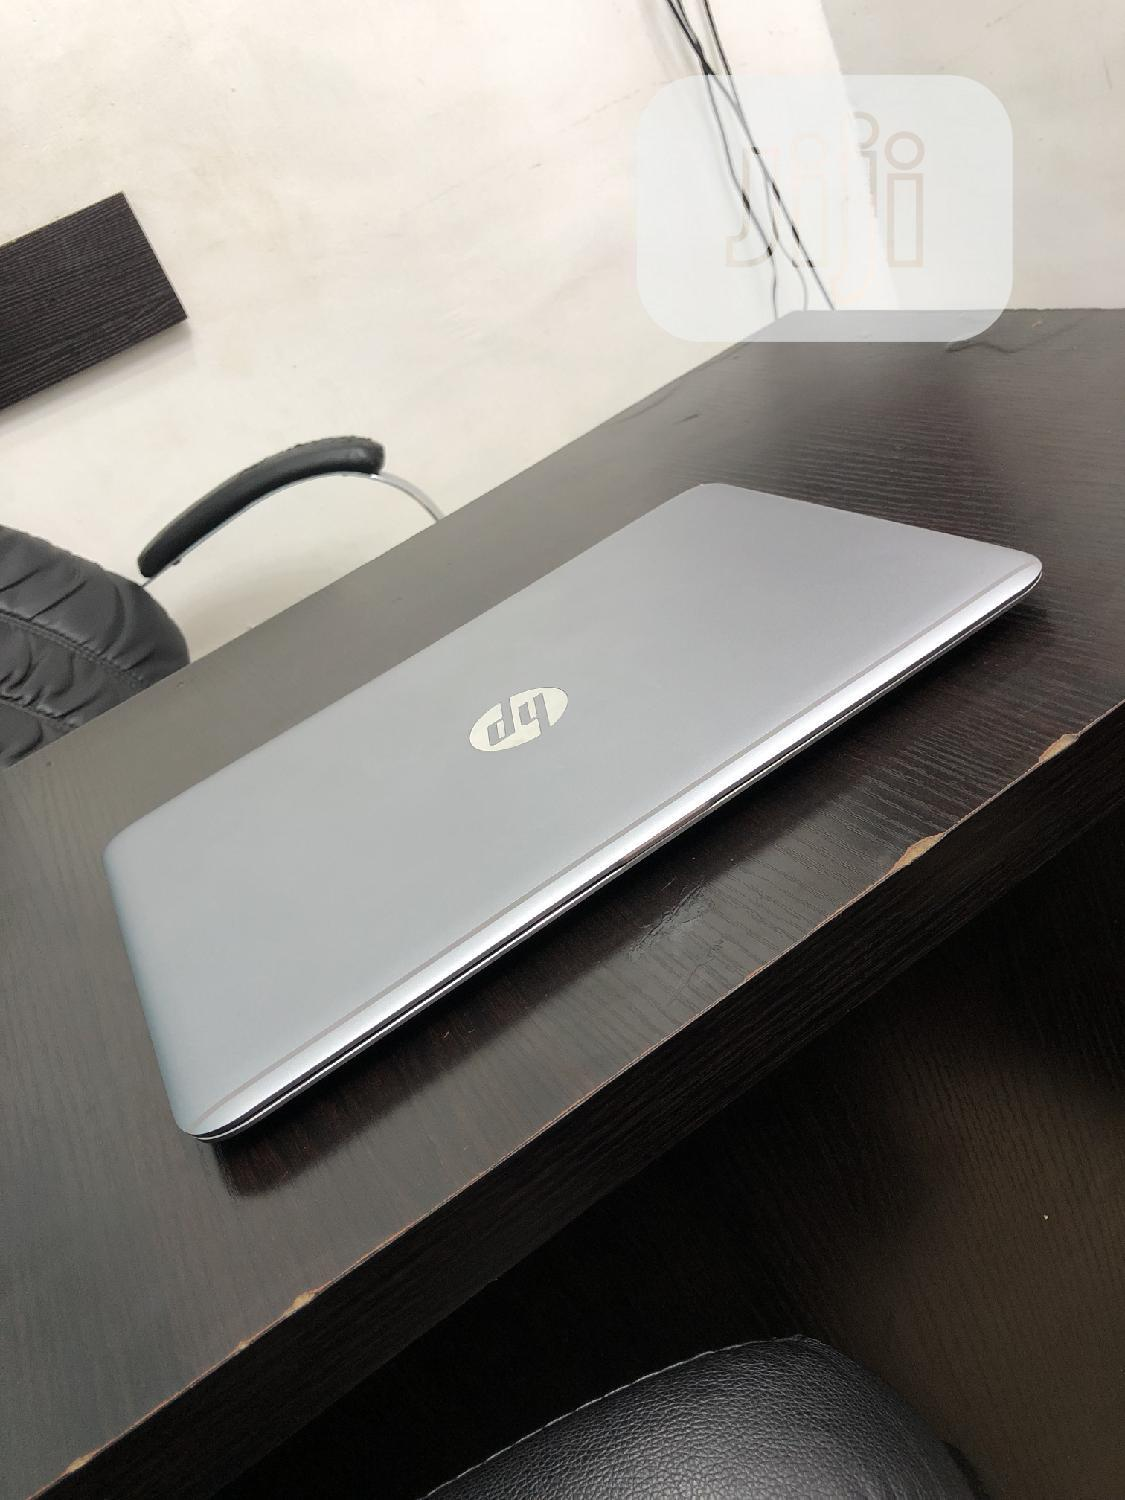 Archive: Laptop HP EliteBook 1040 G3 8GB Intel Core i5 SSD 256GB